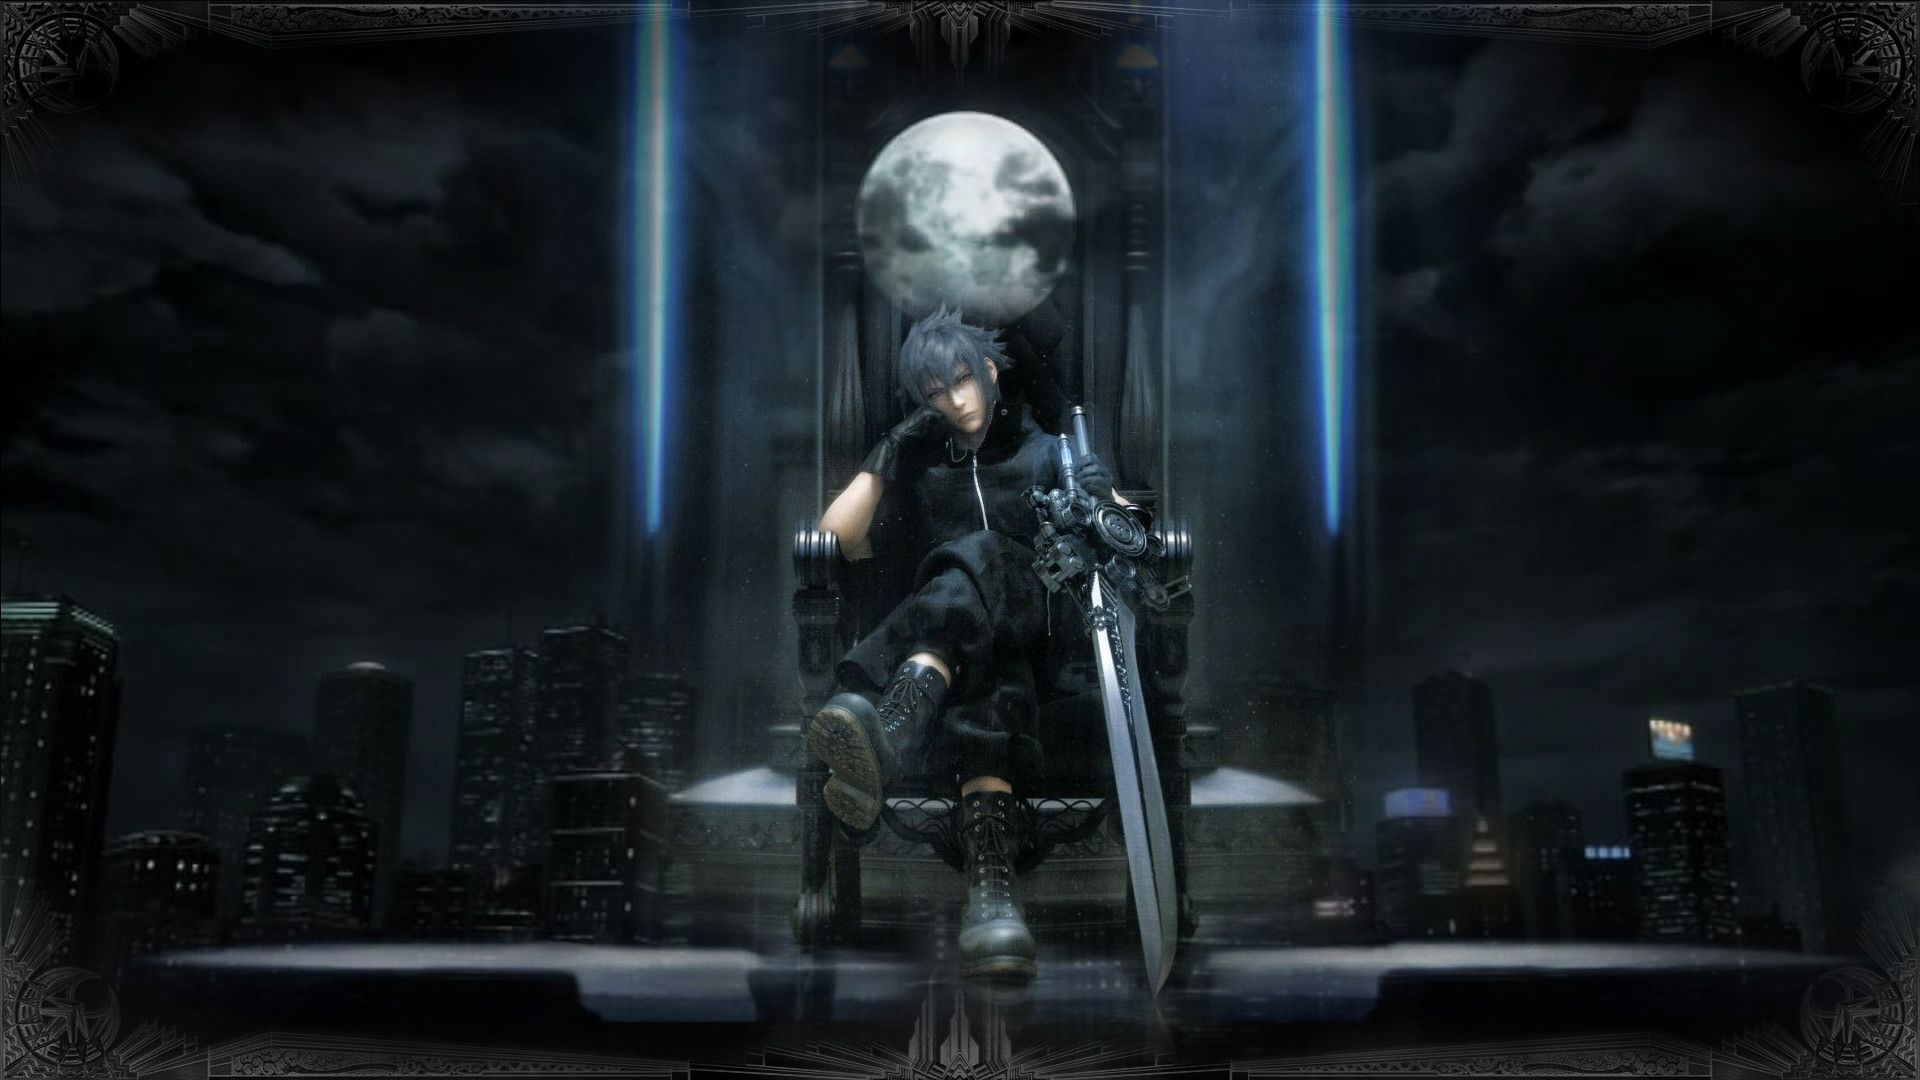 Final Fantasy 15 Noctis Wallpaper Desktop Click Wallpapers In